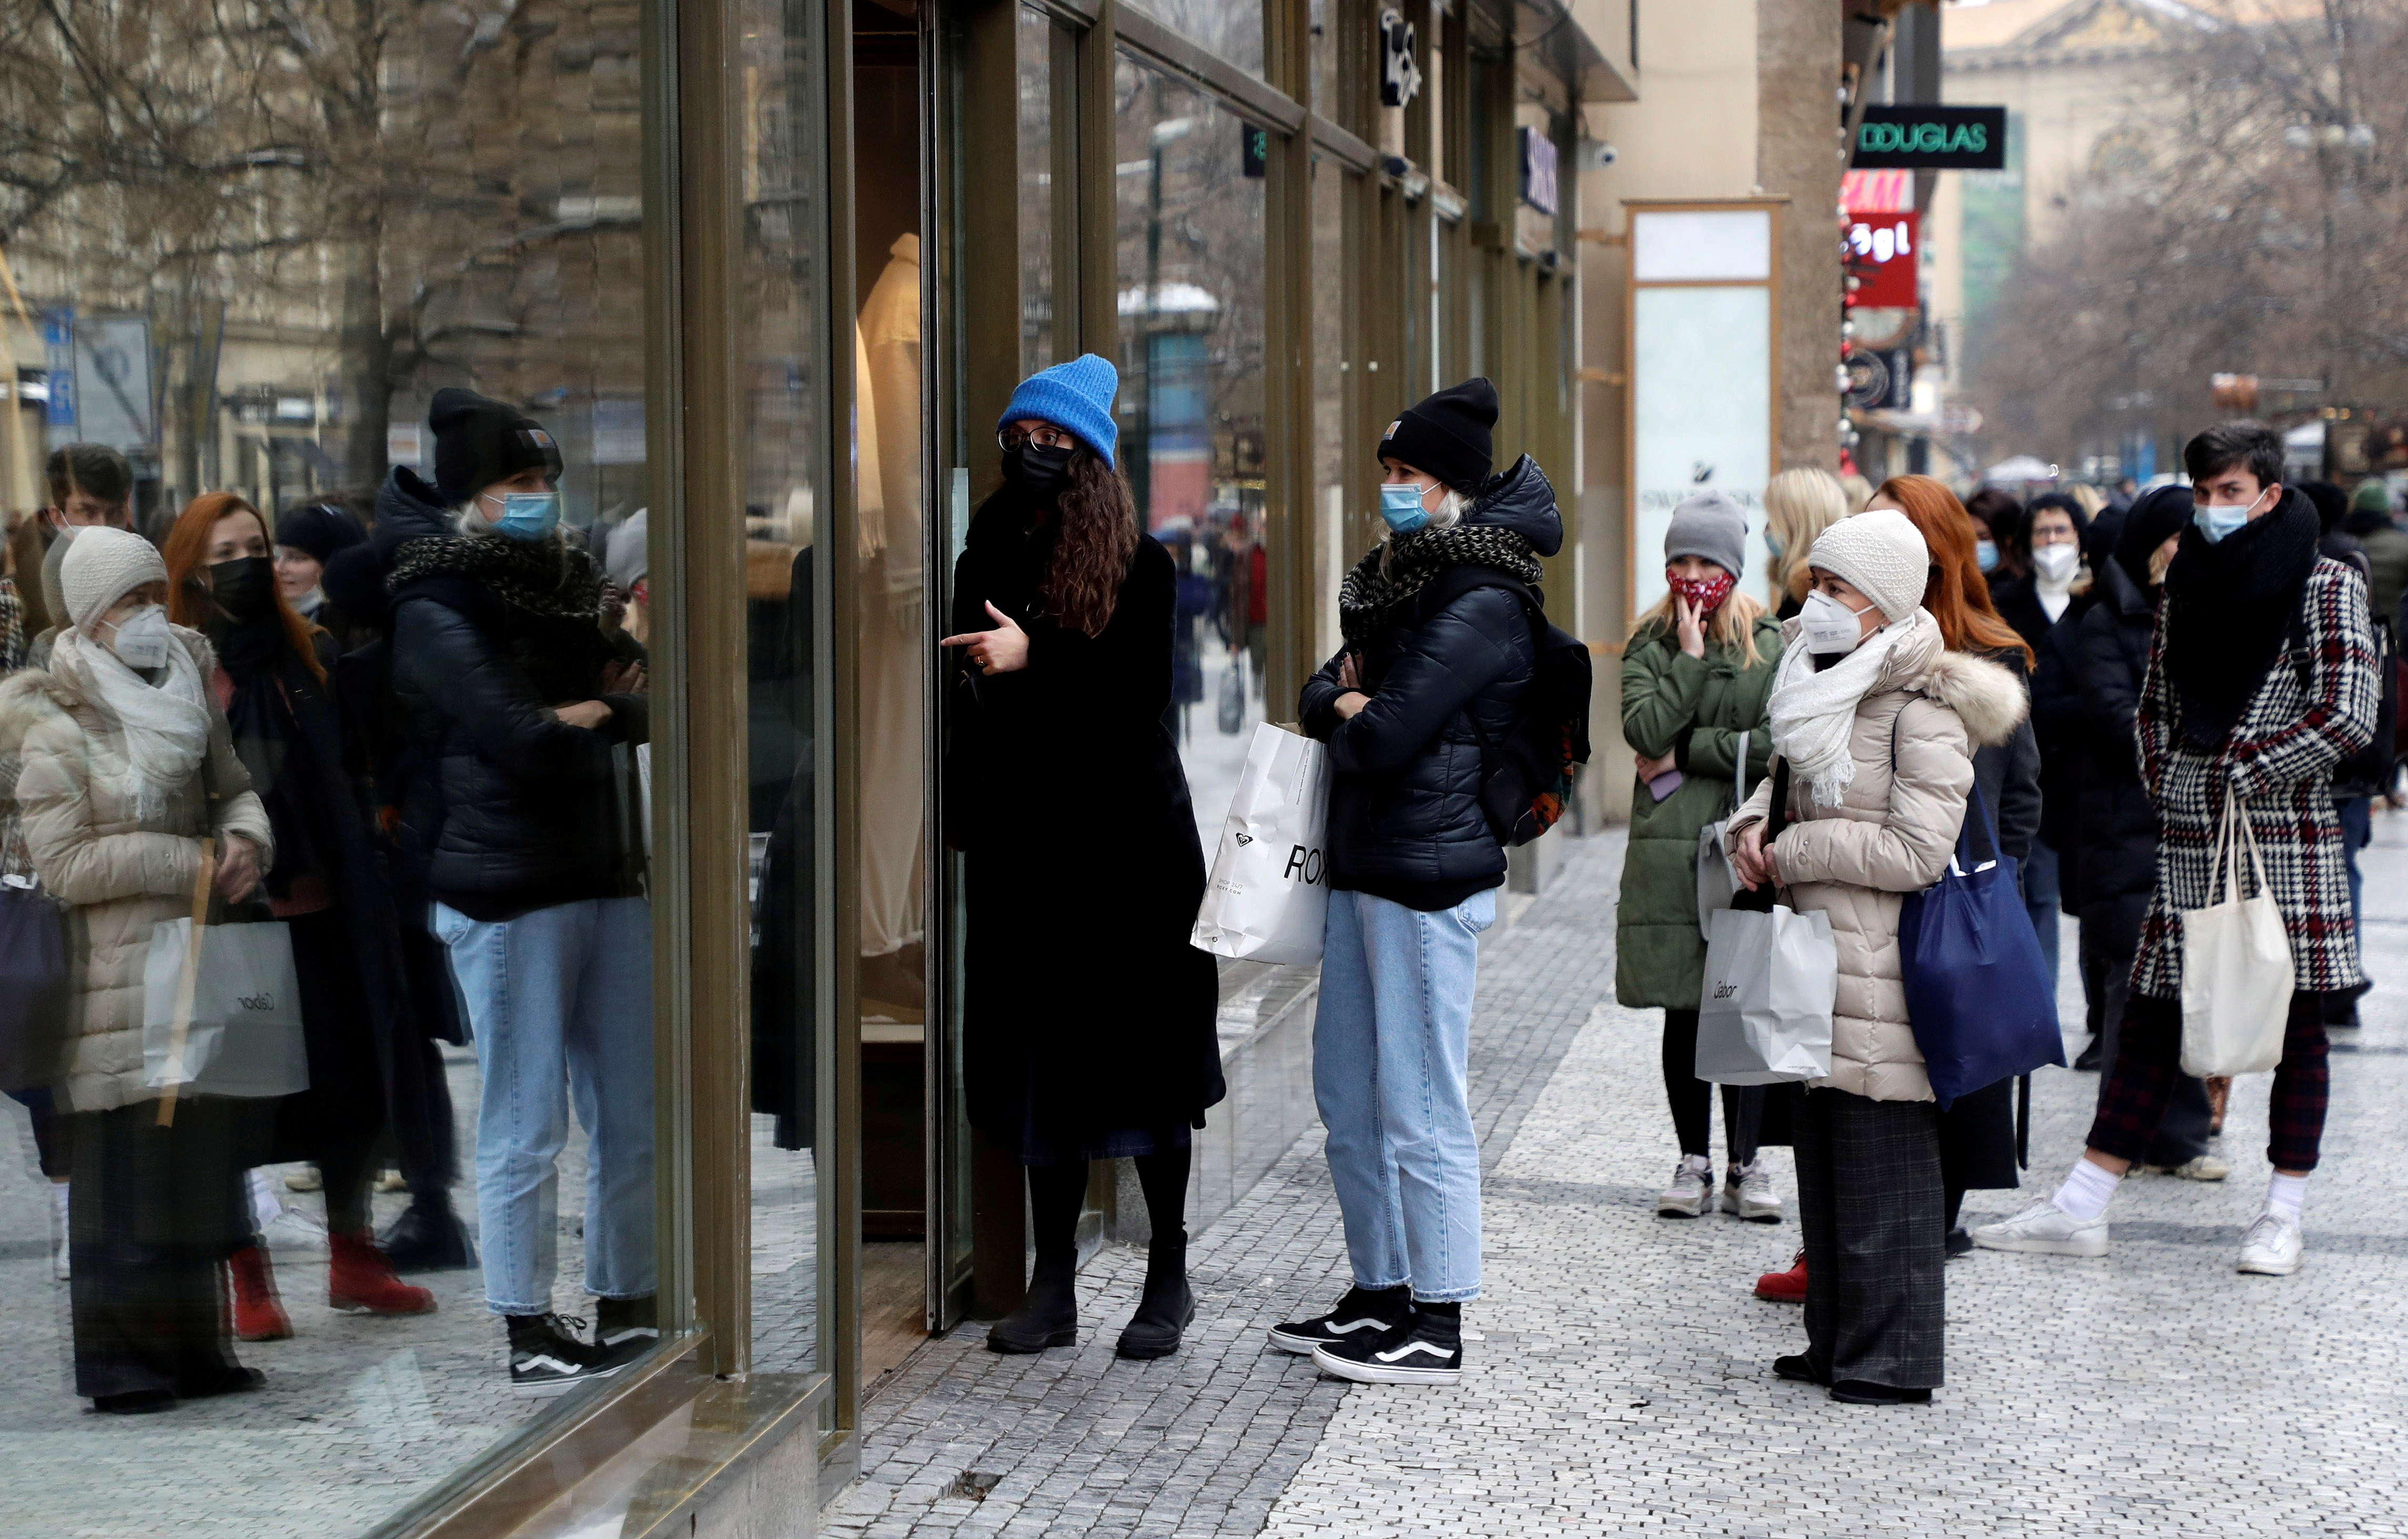 Customers queue in front of the re-opened shop, as restrictions ease following the coronavirus disease (COVID-19) outbreak in Prague, Czech Republic, December 3, 2020.    REUTERS/David W Cerny